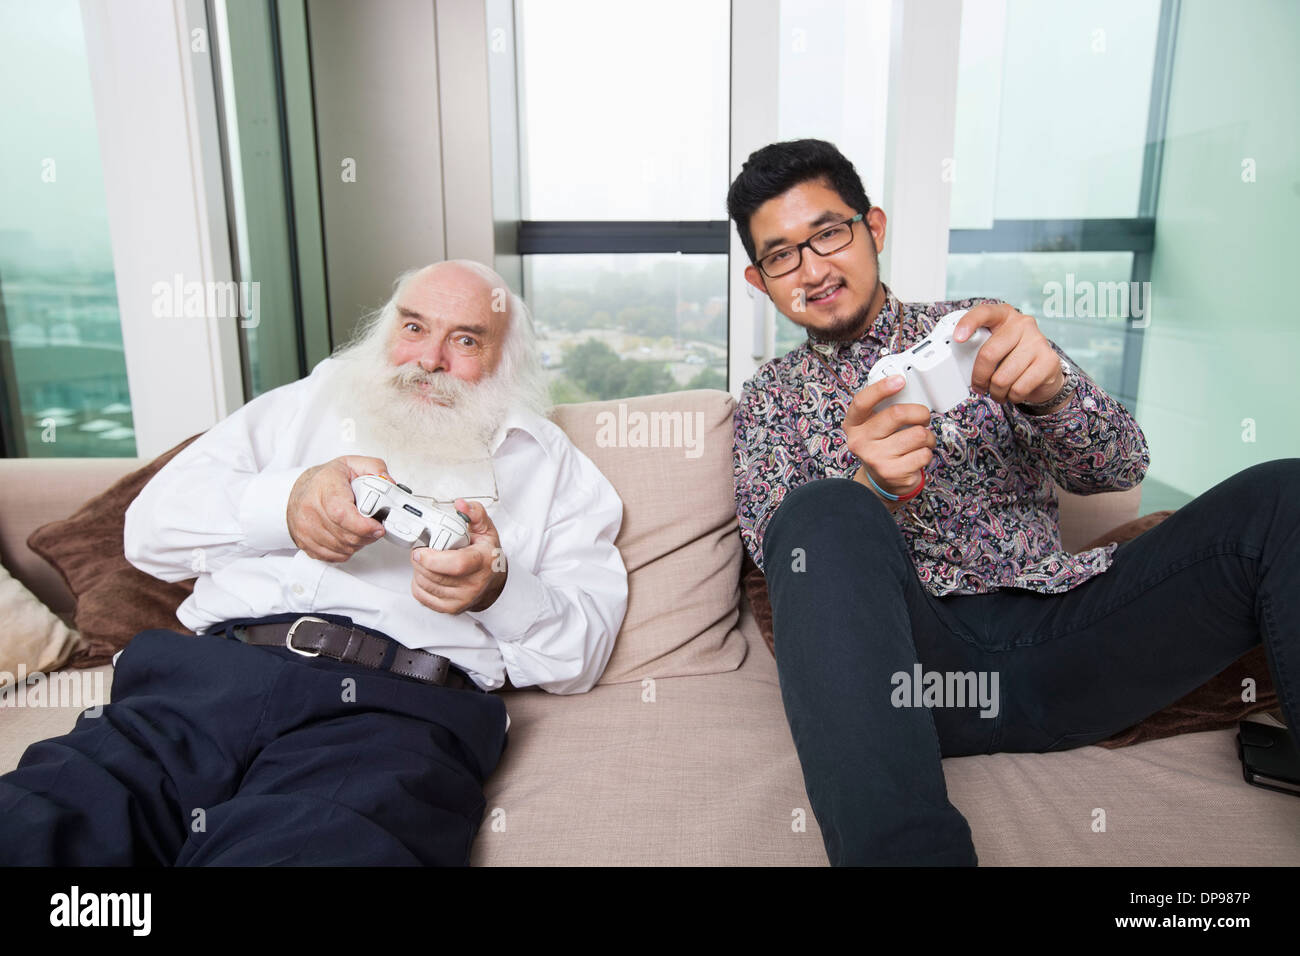 Portrait of grandson playing video game on sofa at home Stock Photo